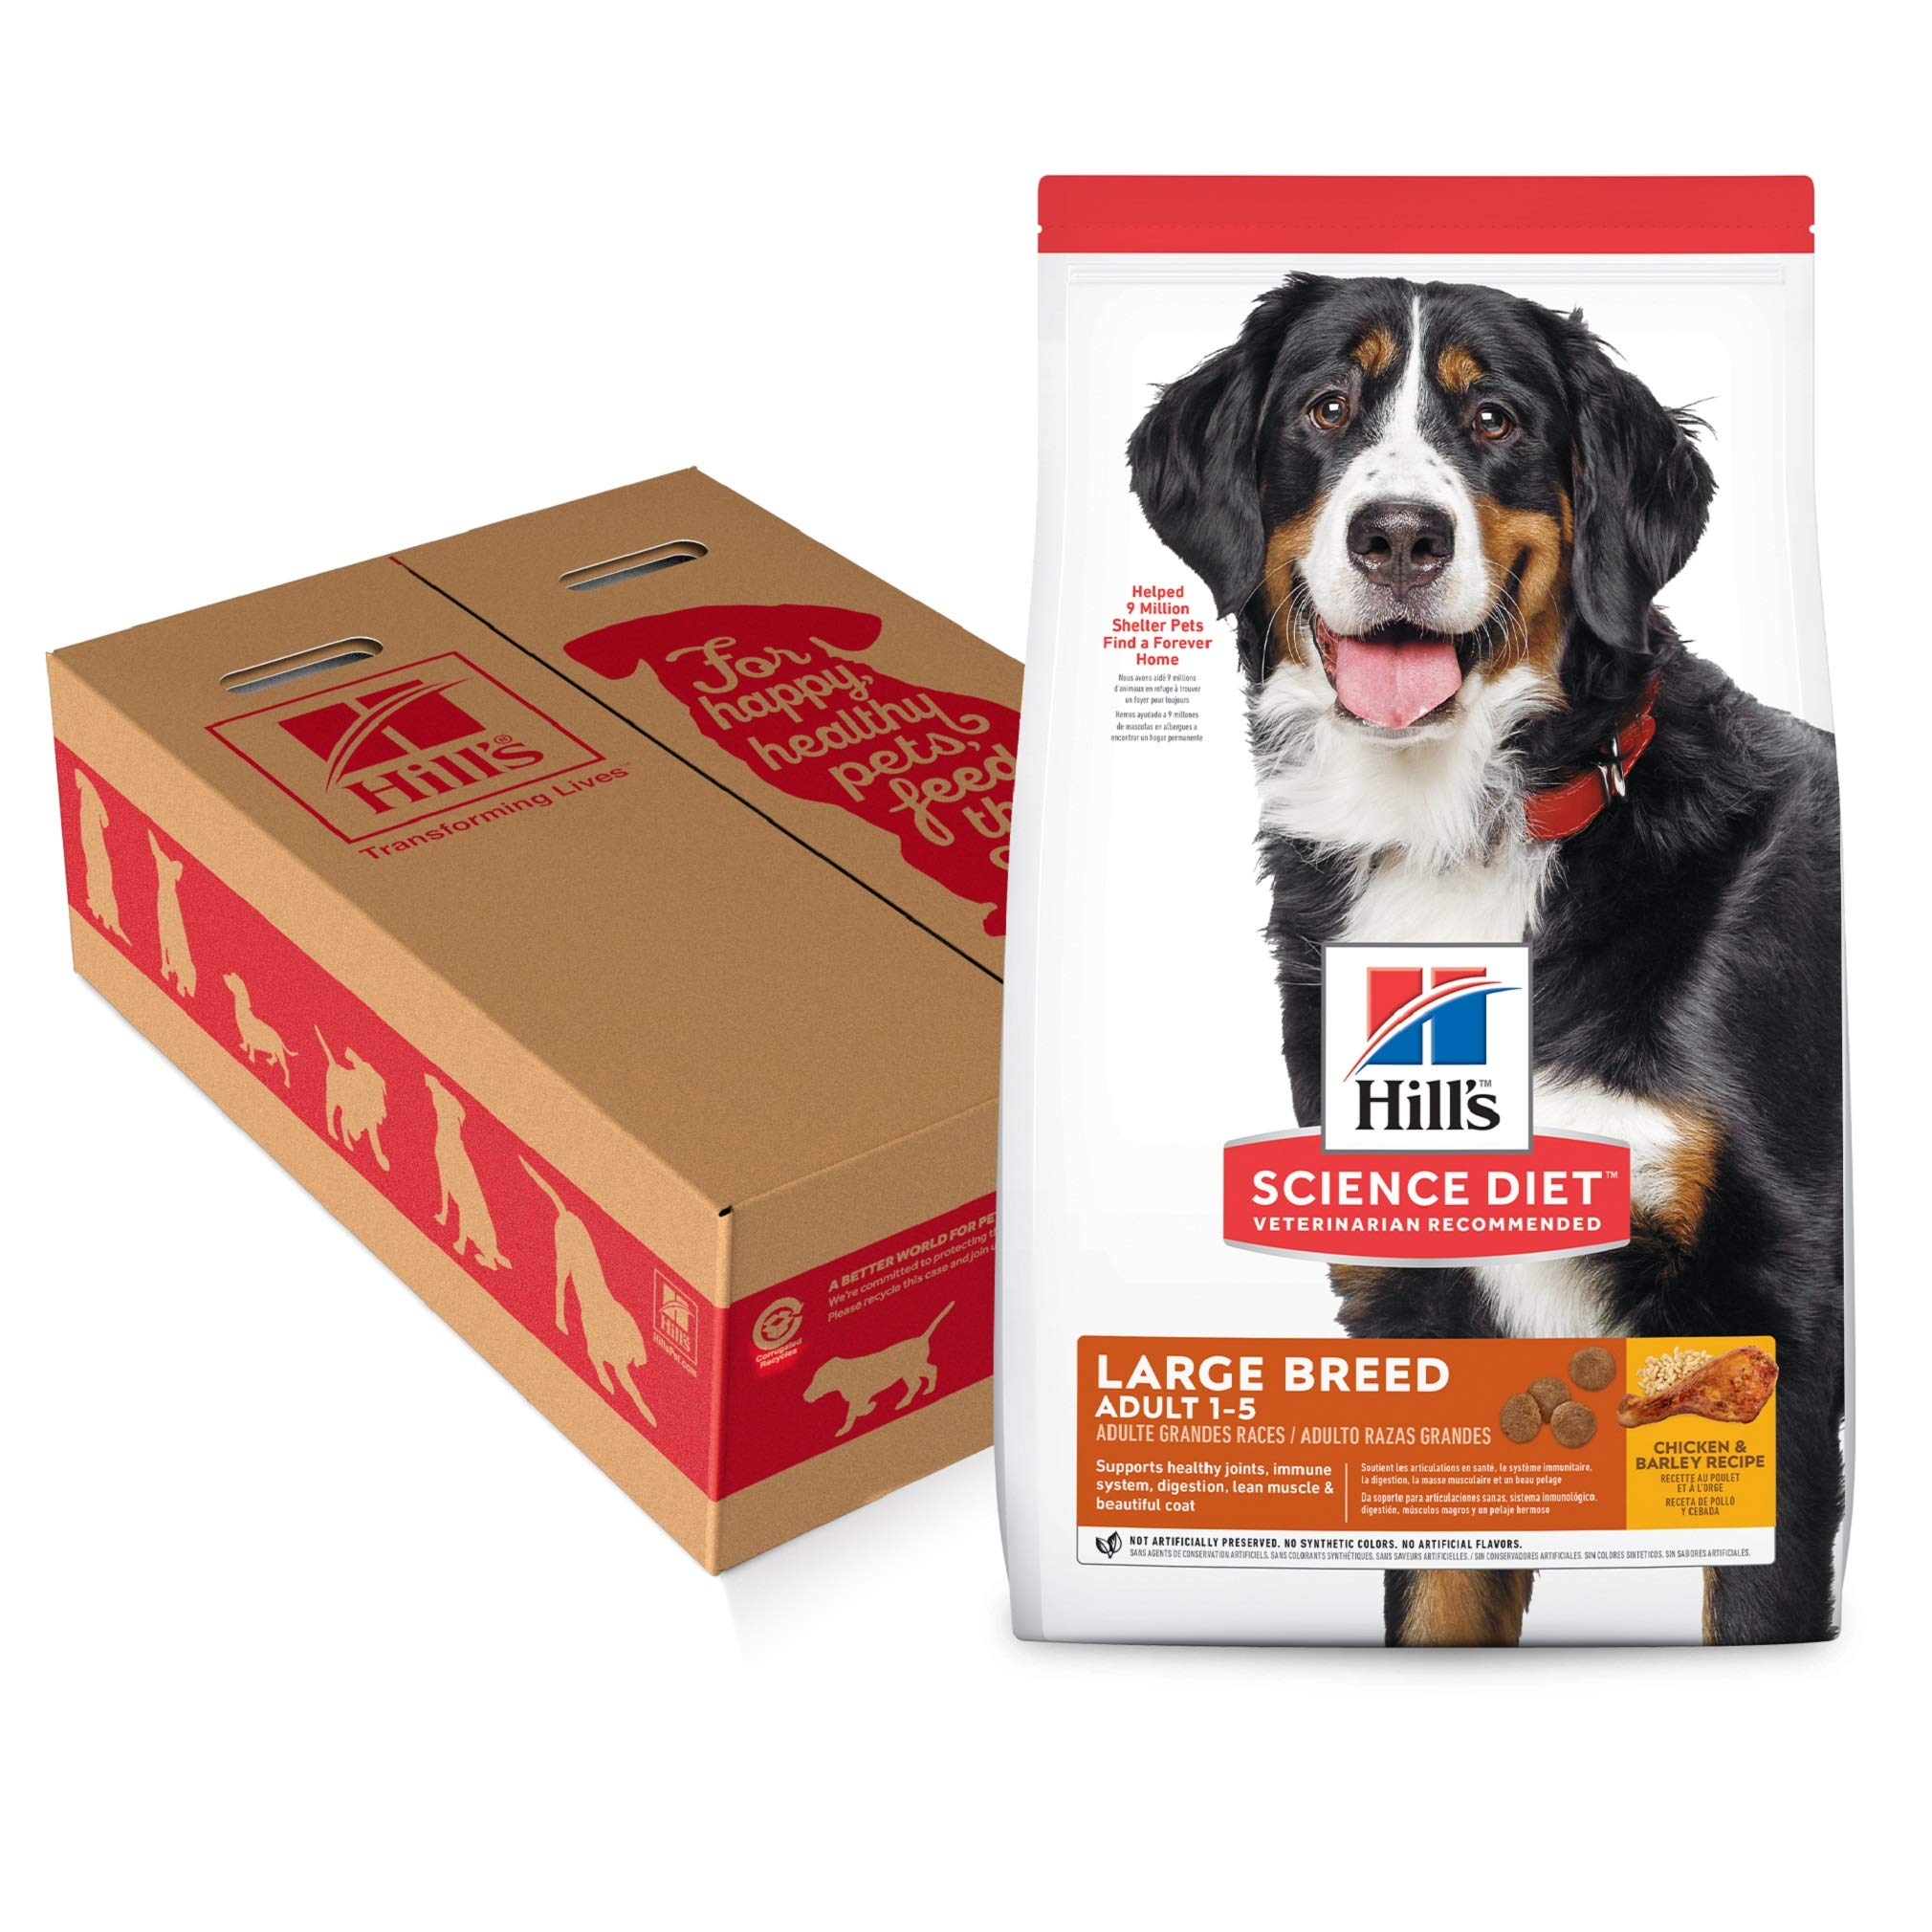 Hill's Science Diet Dry Dog Food, Adult, Large Breed, Chicken & Barley Recipe, 35 LB Bag by Hill's Science Diet